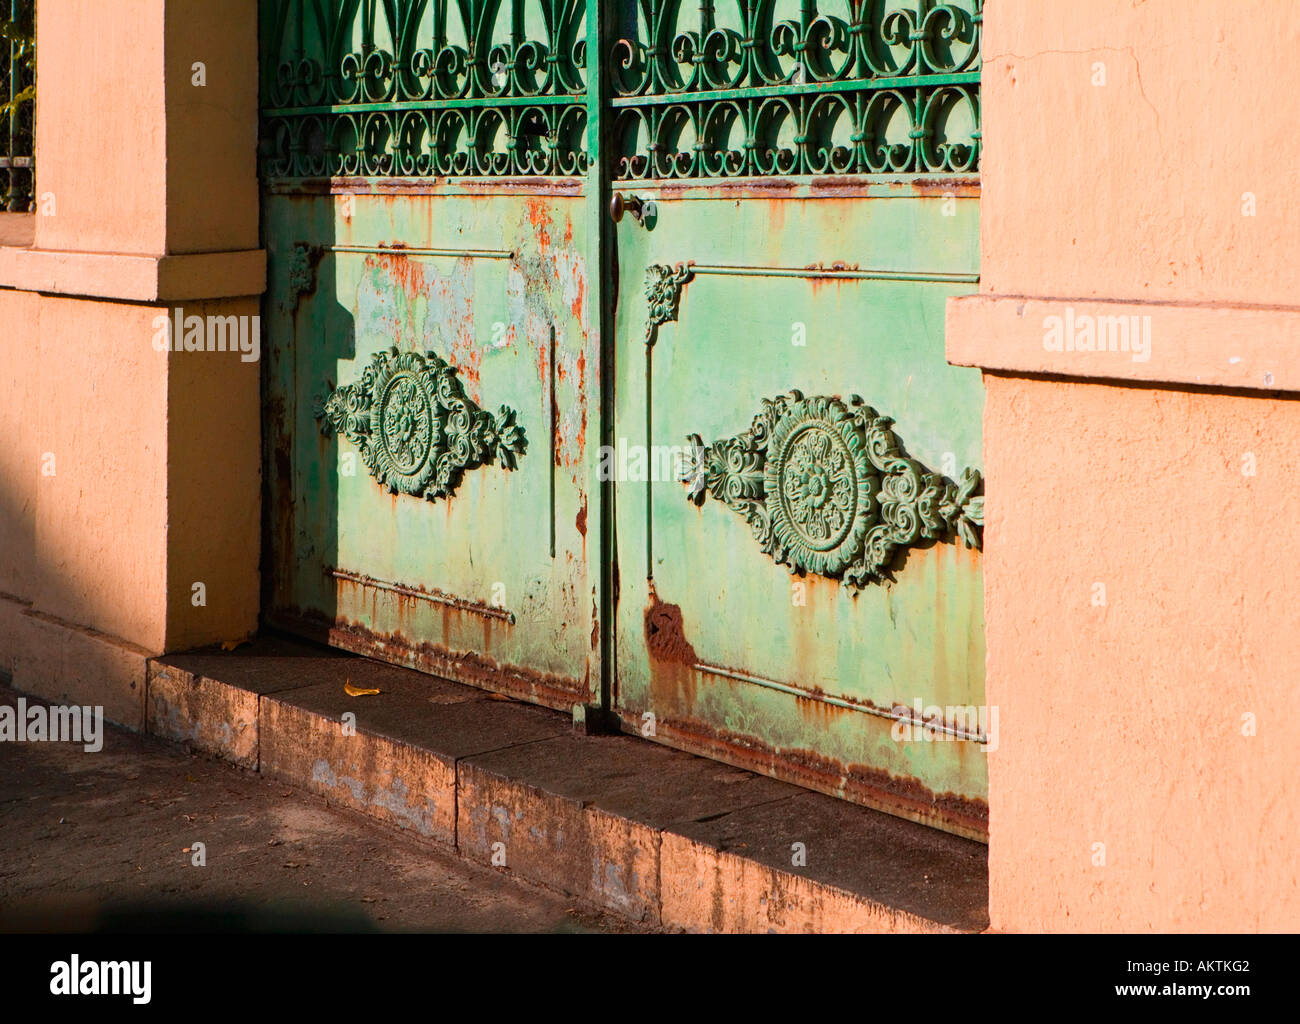 Saint-Denis, Réunion - old rusty gate in need of some love. - Stock Image